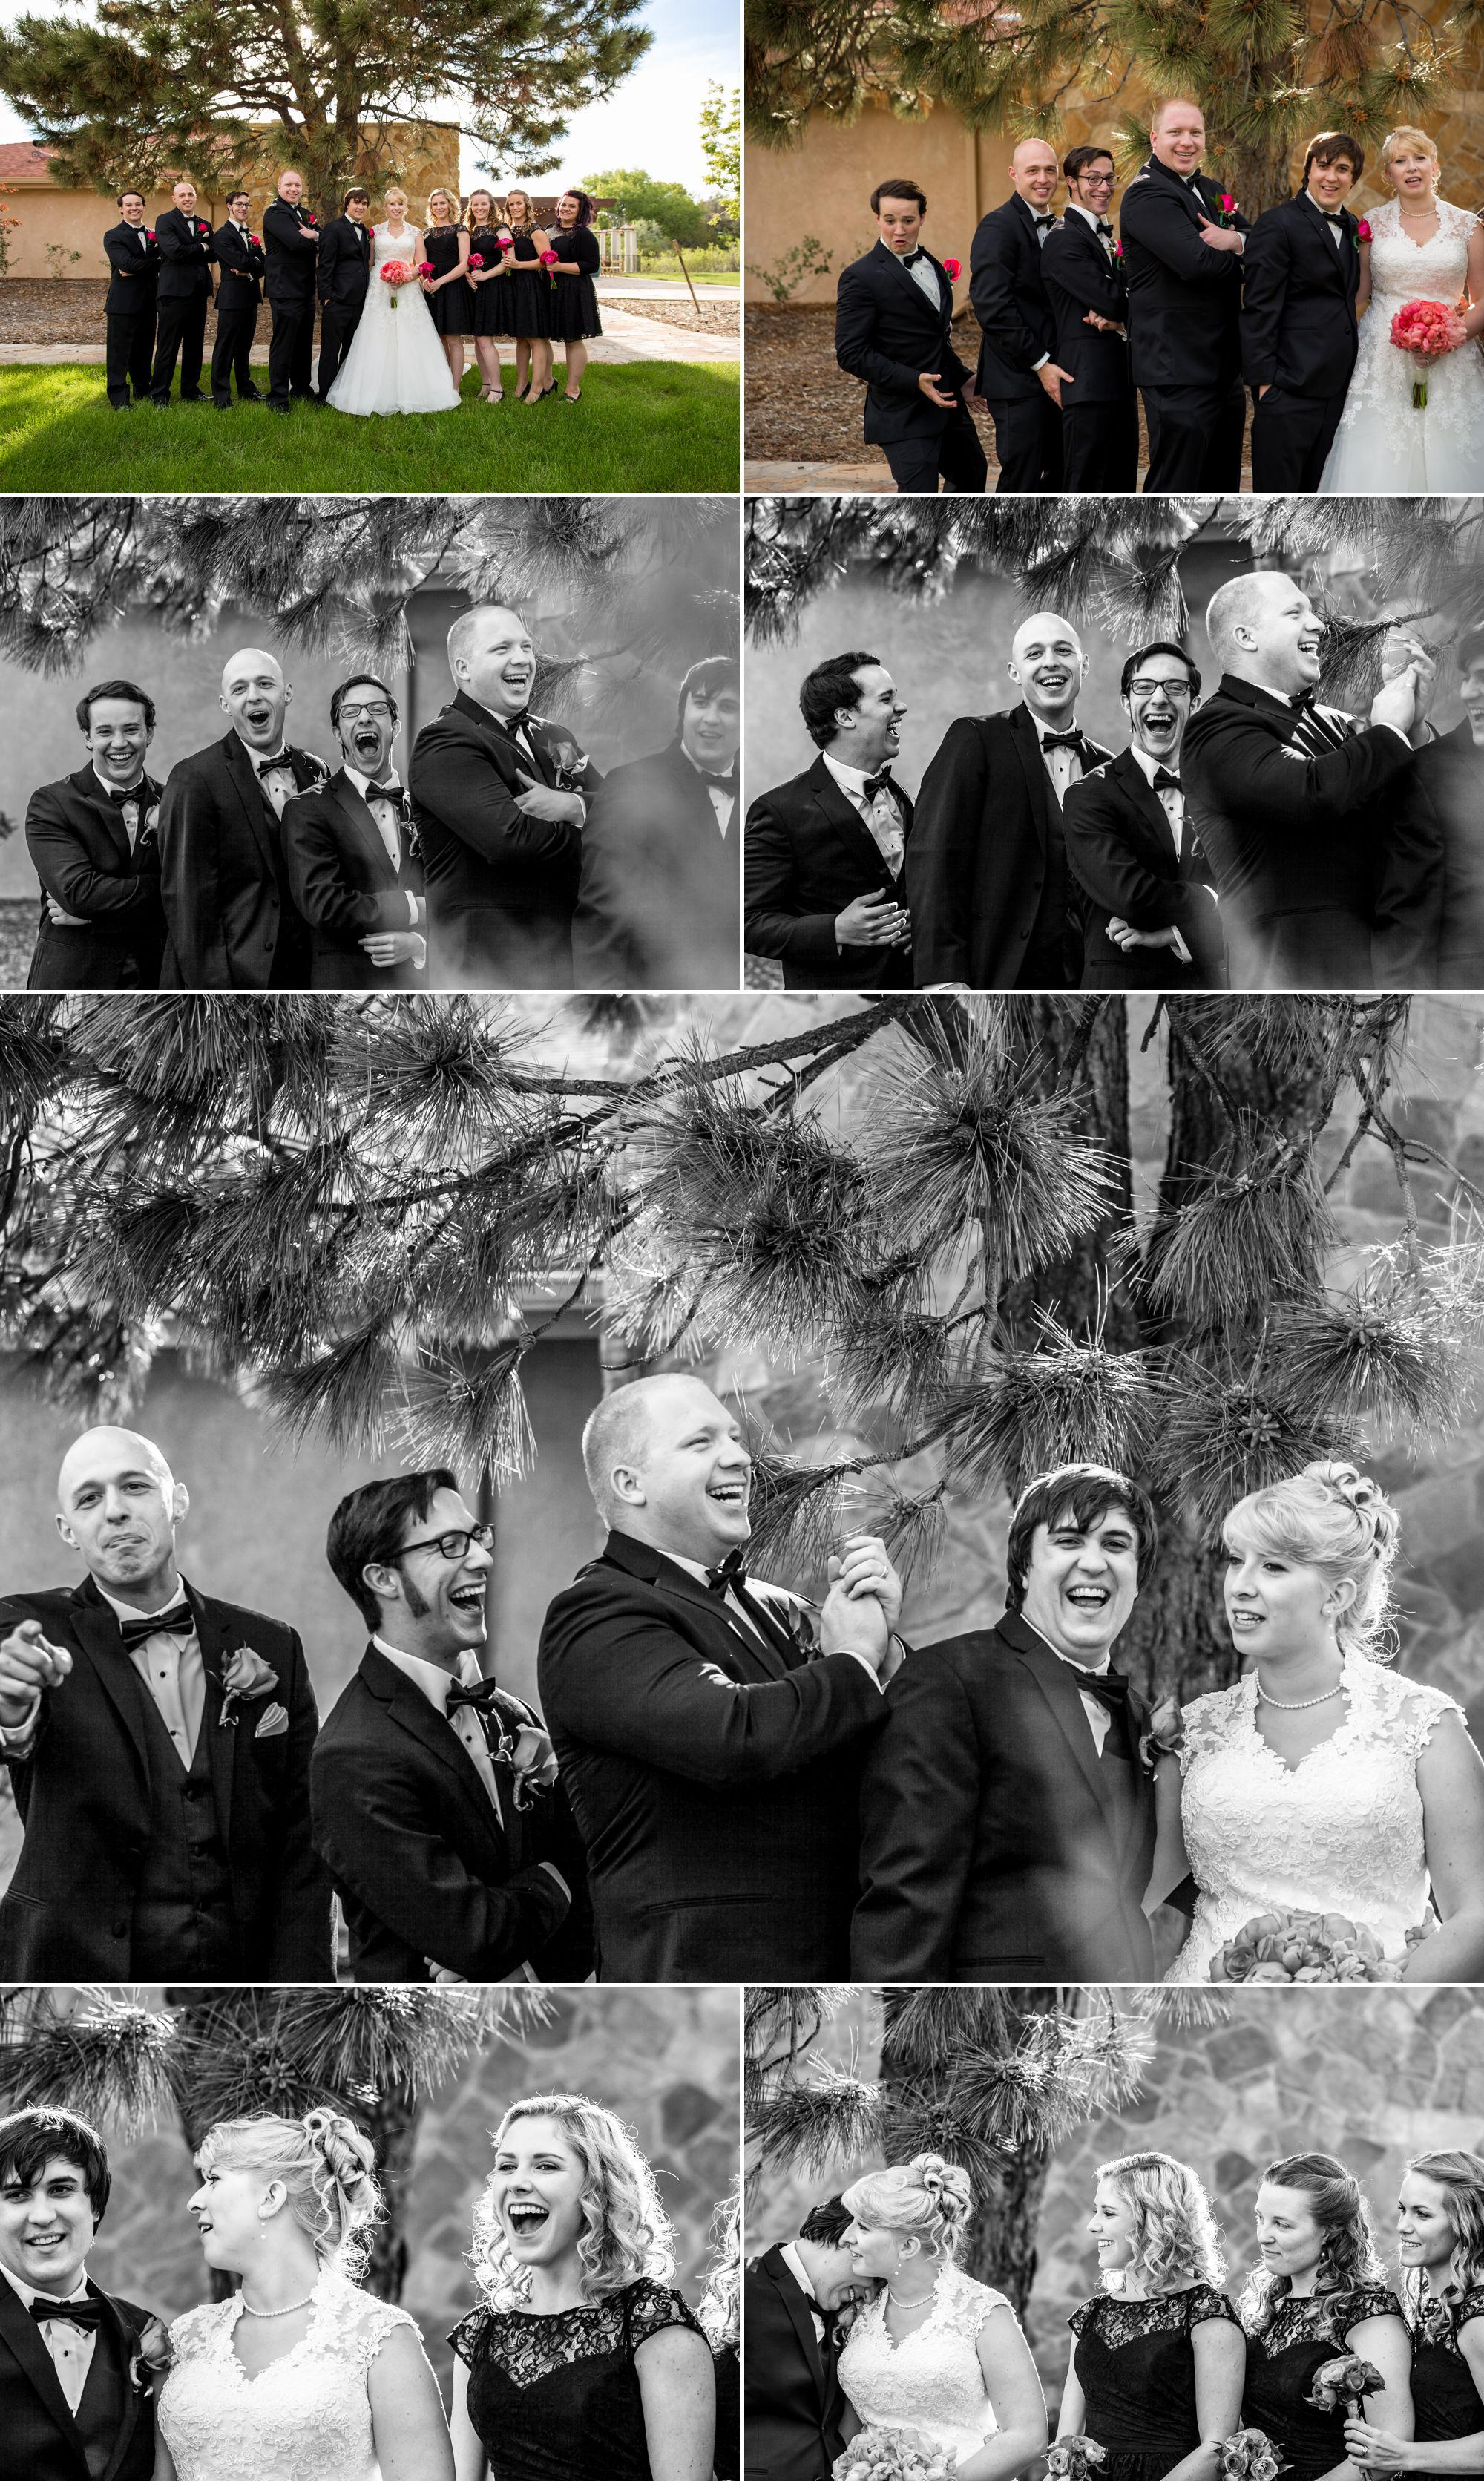 A little trick we use to get a laugh out of the bridal party